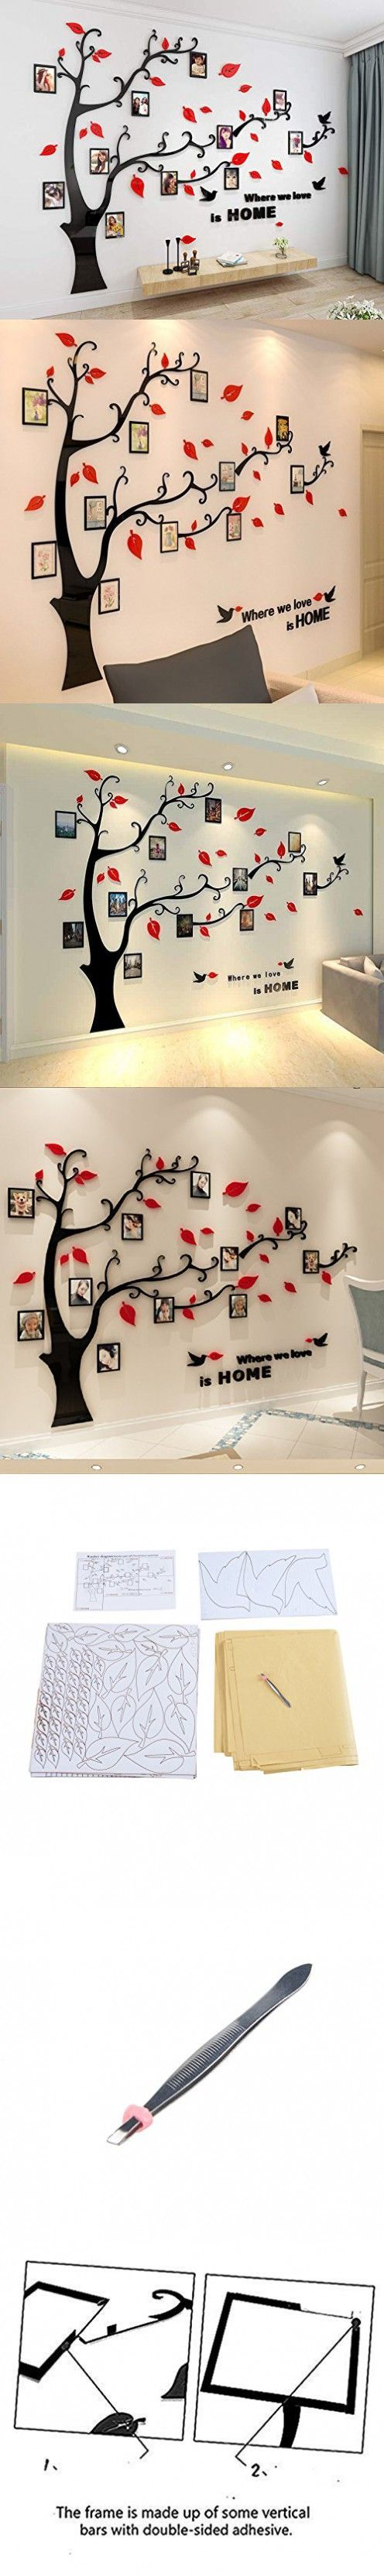 Unitendo 3d Wall Stickers Red Leaves Black Branches Wall Sticker Photo Frames Familytree Wall Decal Easy To Install Apply Diy Photo Gallery Frame Decor Sticker With Images Wall Stickers Red Wall